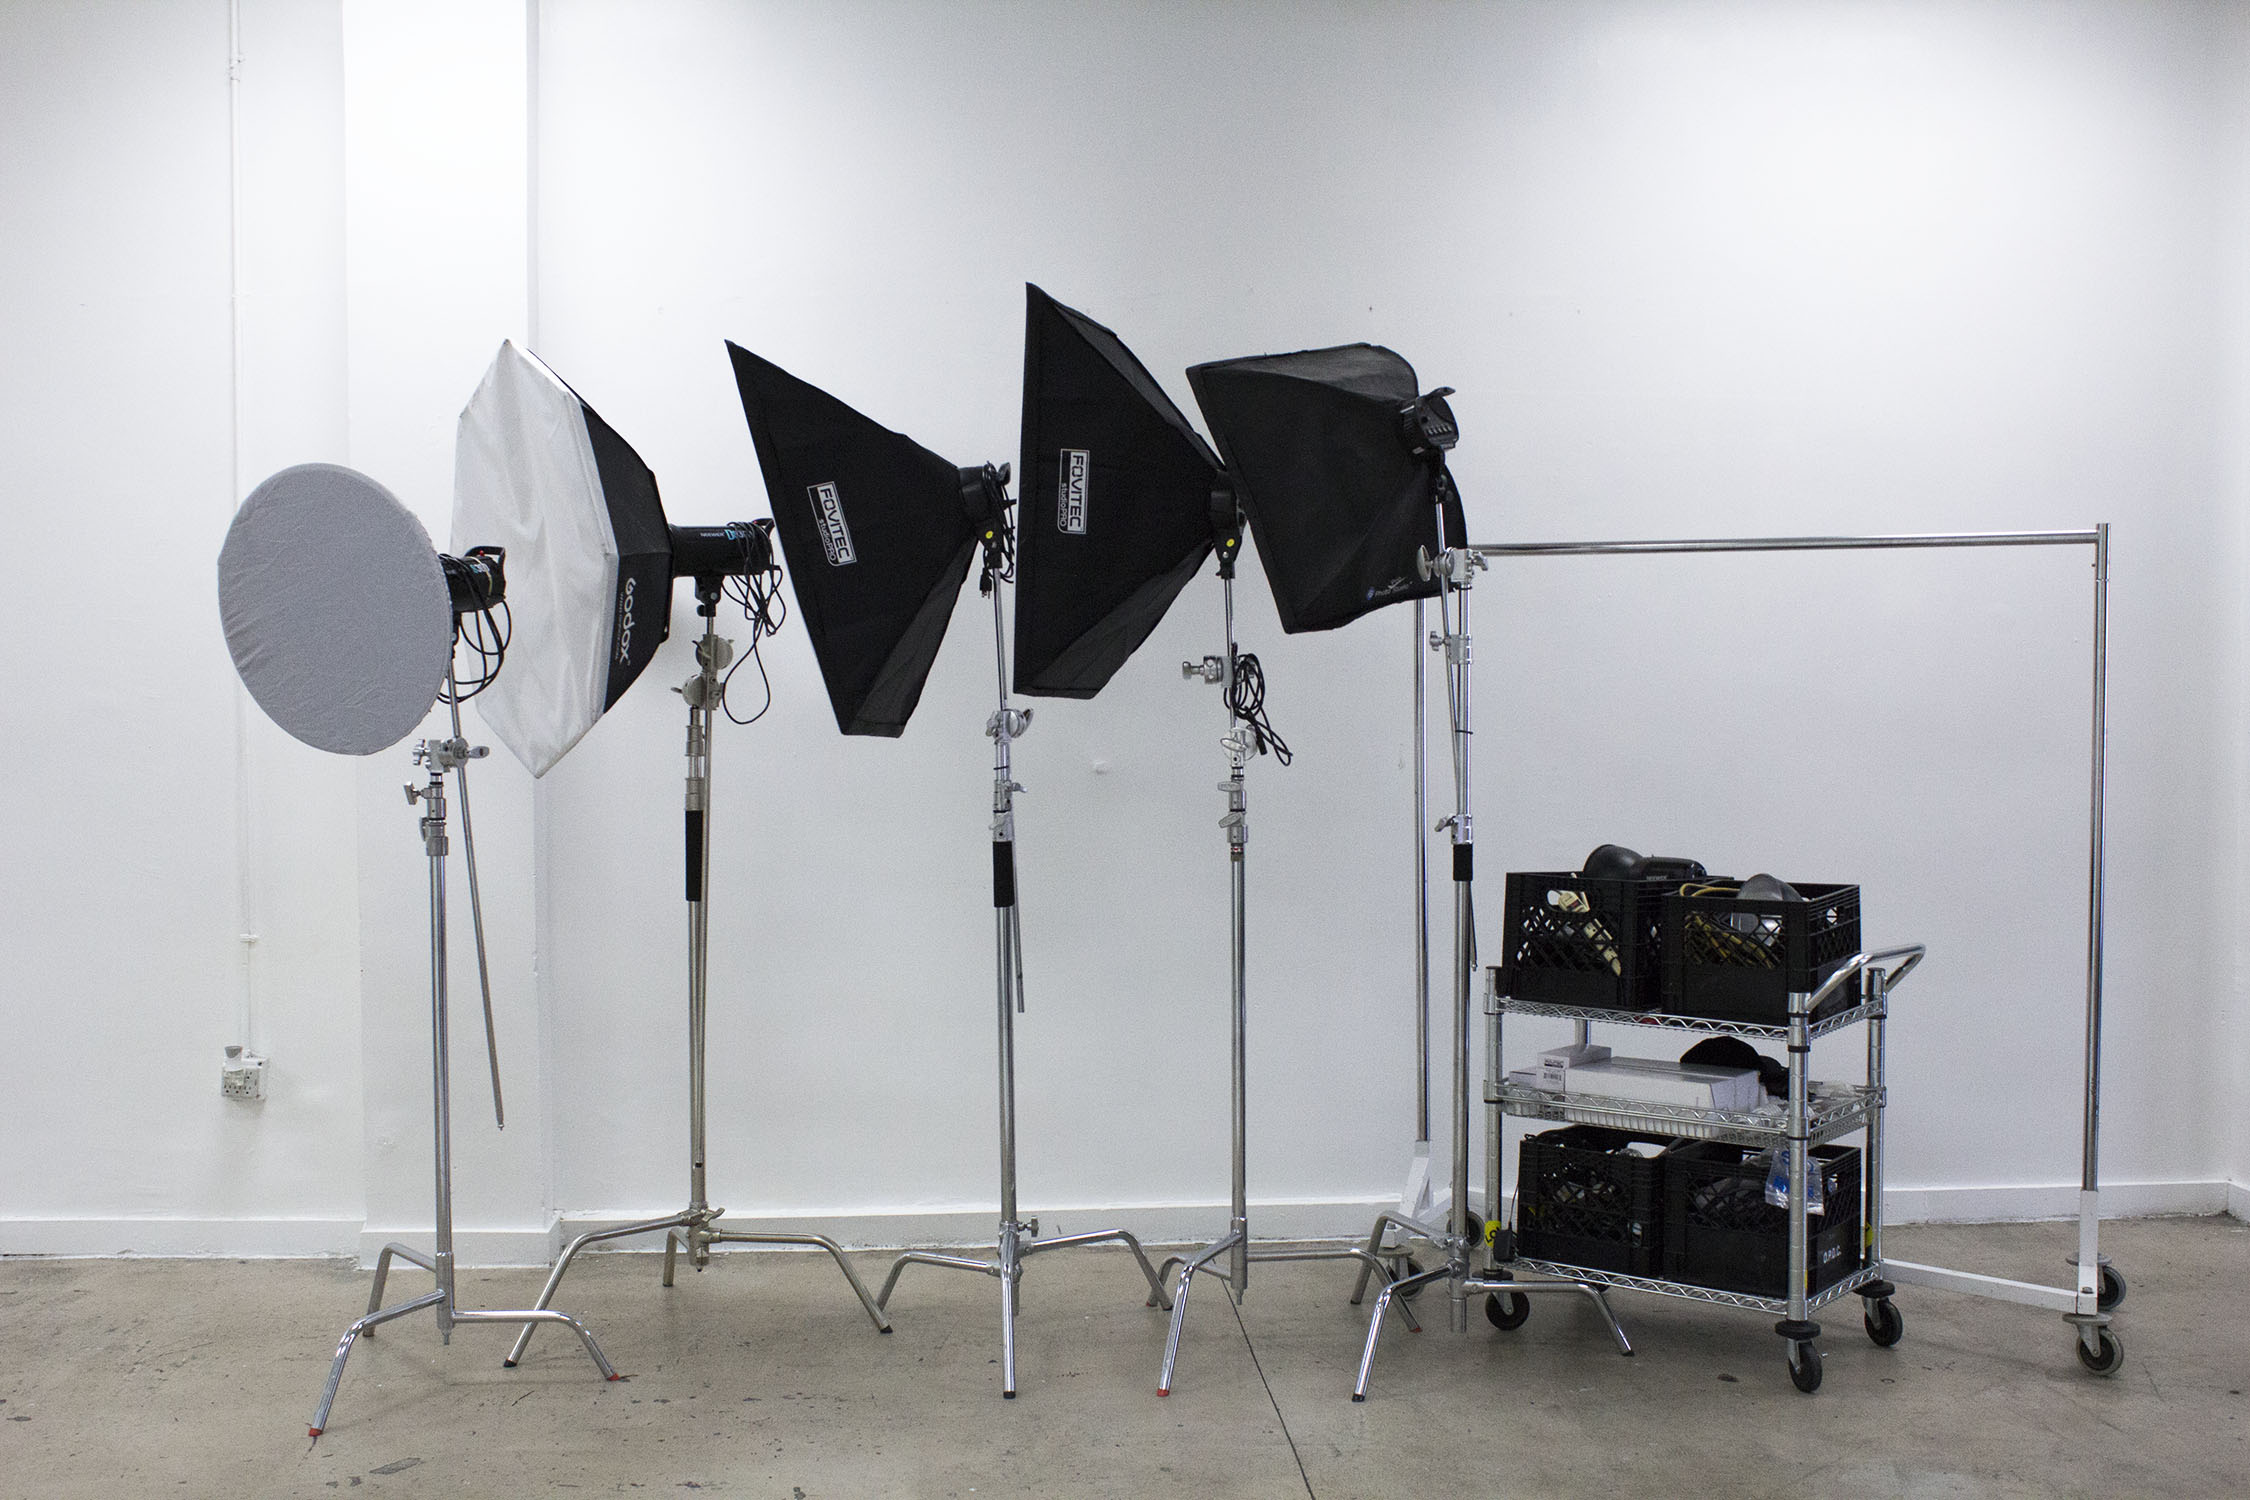 Lighting Included at Opulen Studios